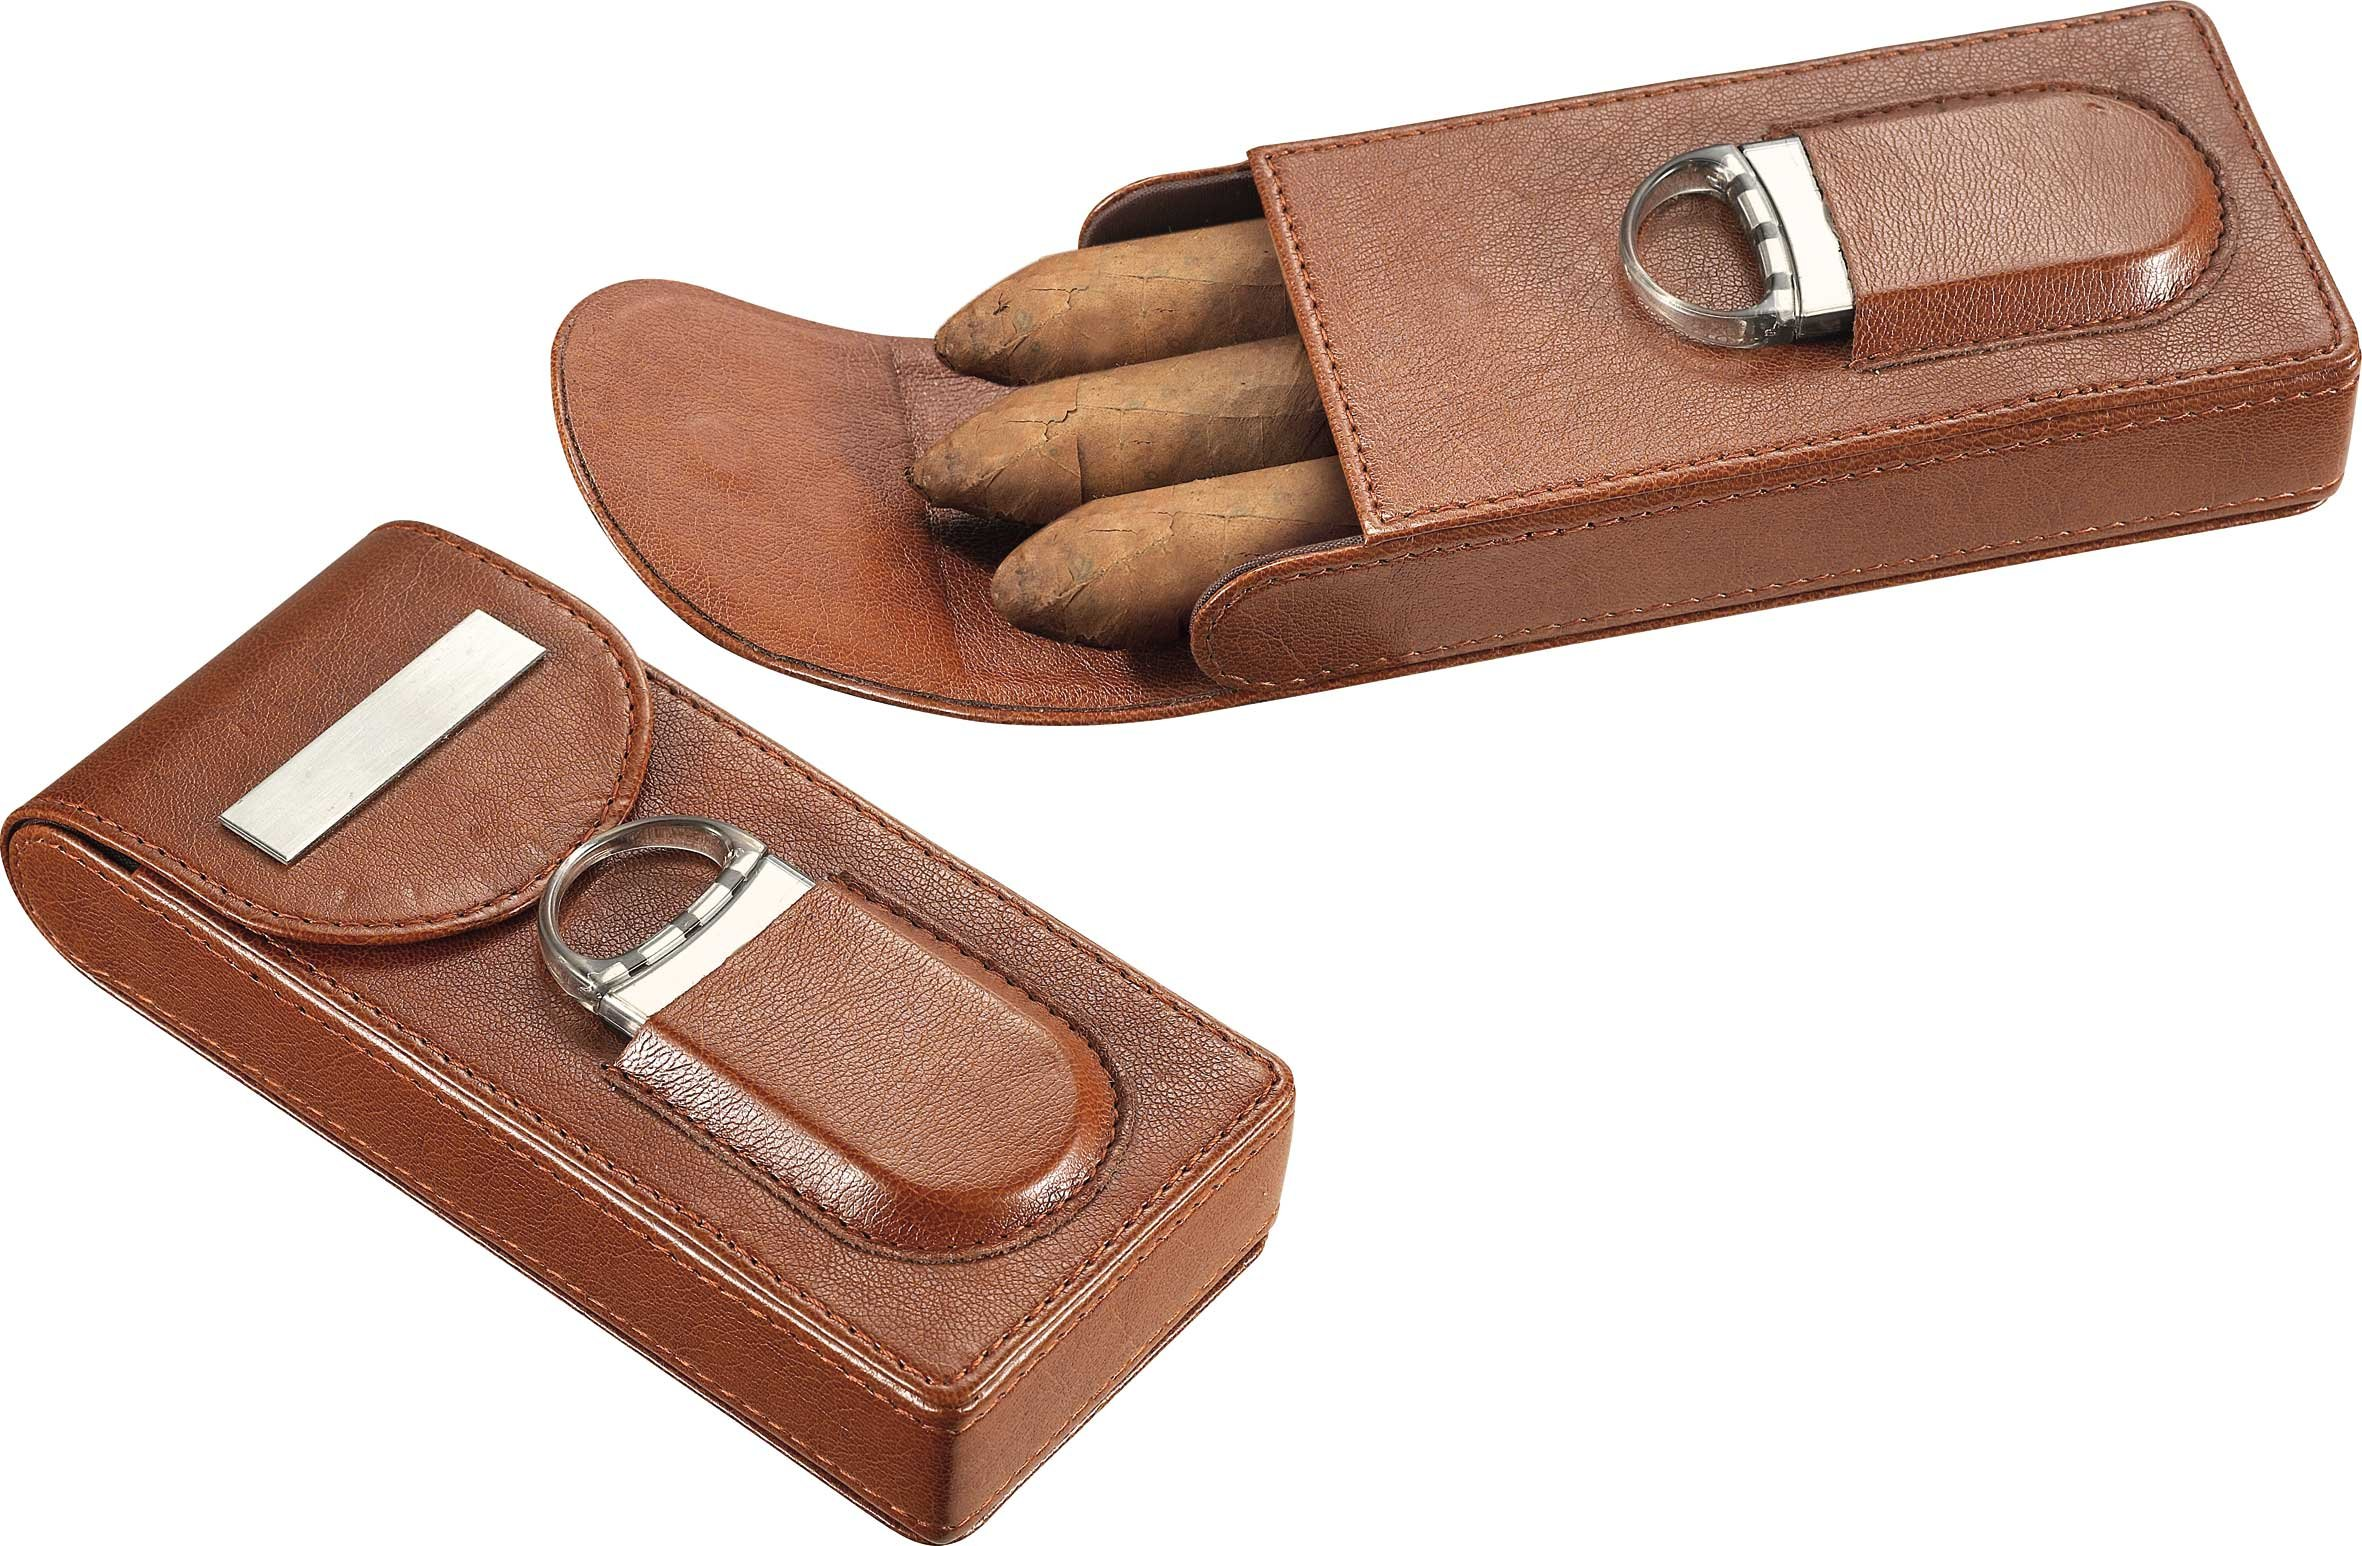 Personalized Leather Cigar Holder with Cutter, Free Engraving